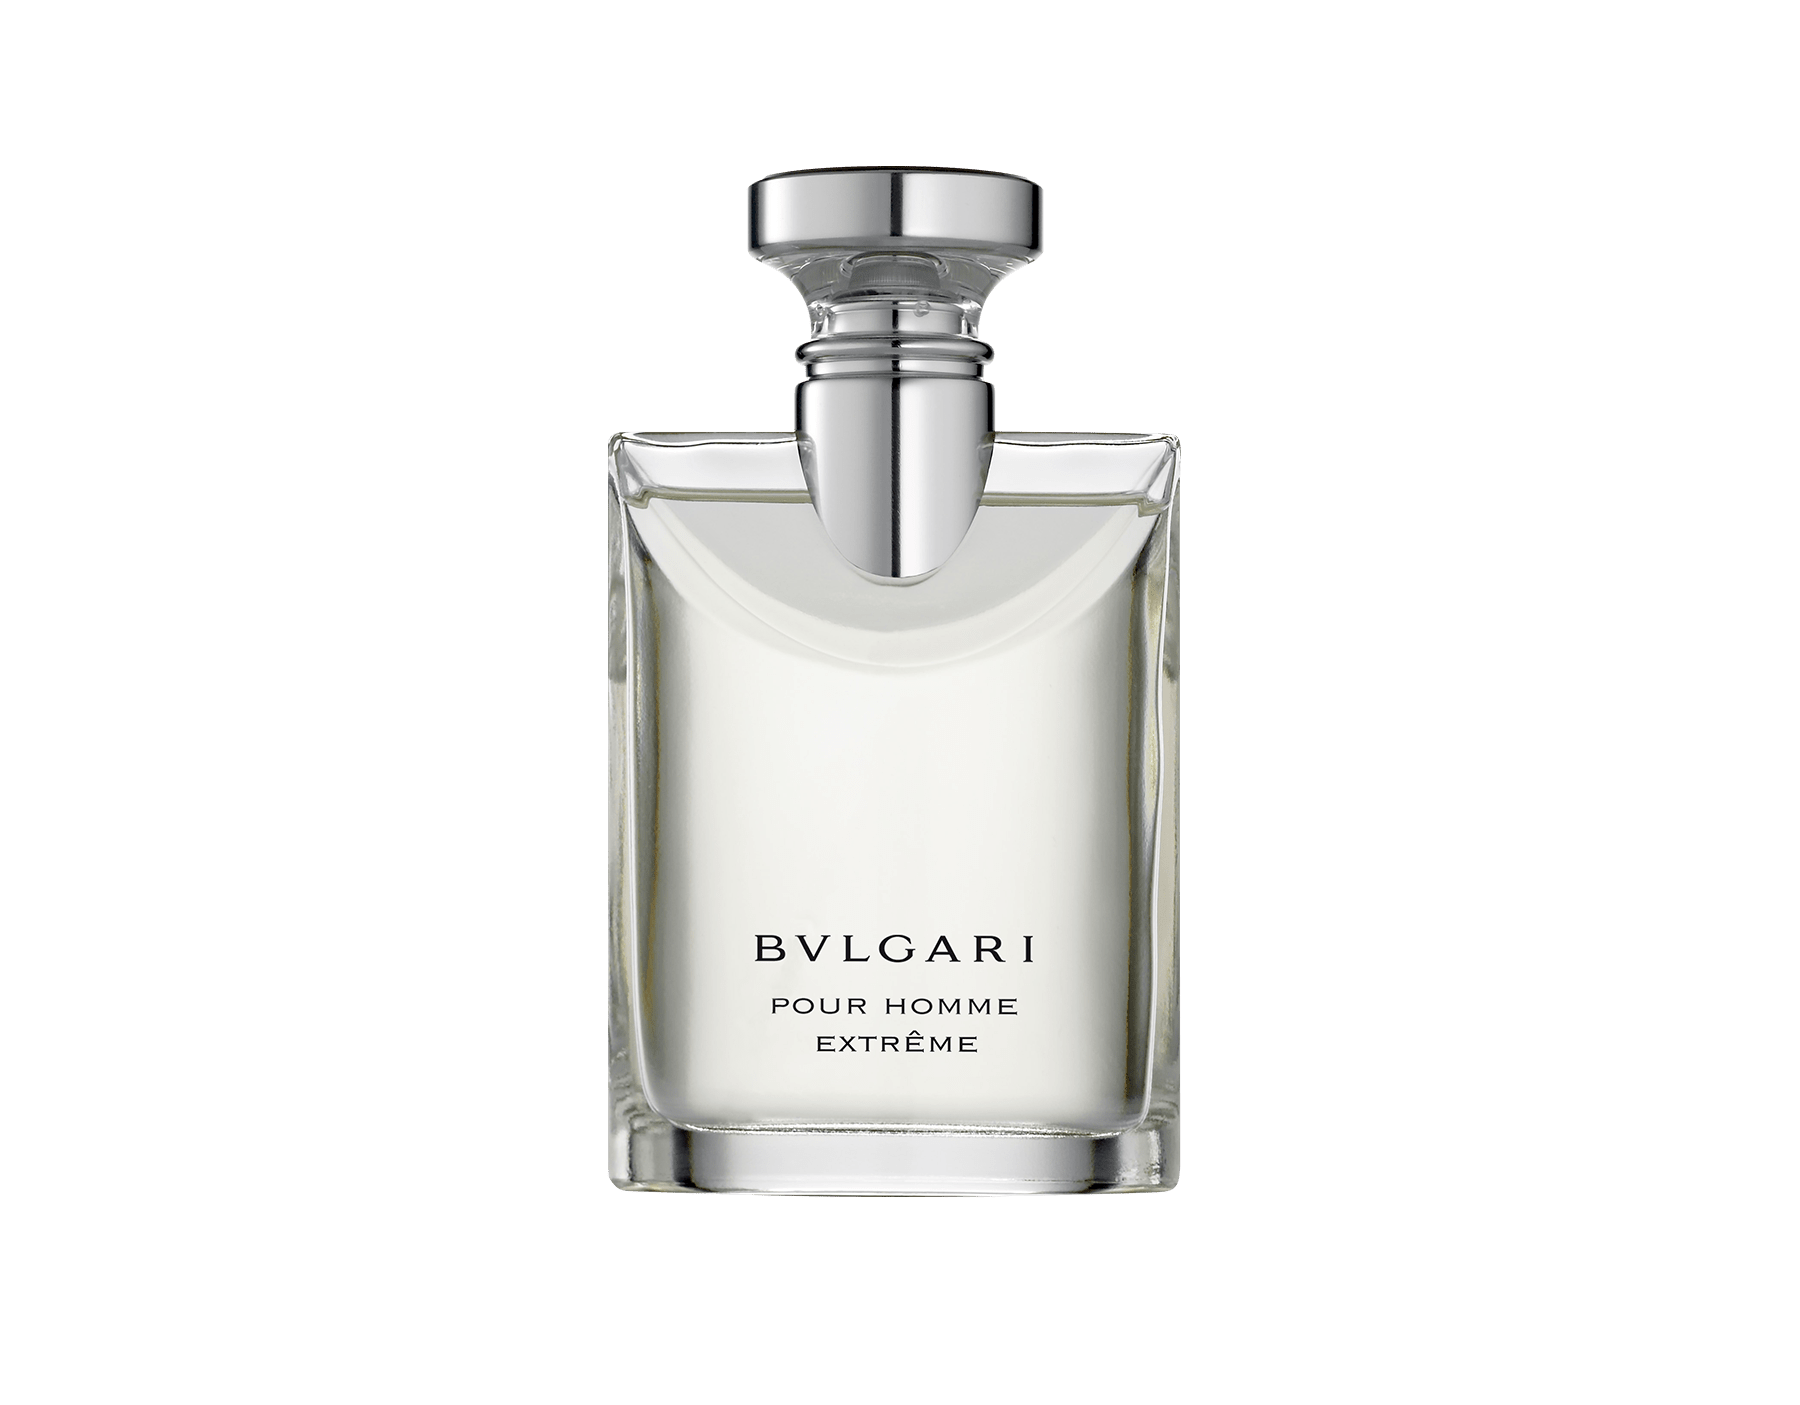 A contemporary and classic fragrance for men 83370 image 1